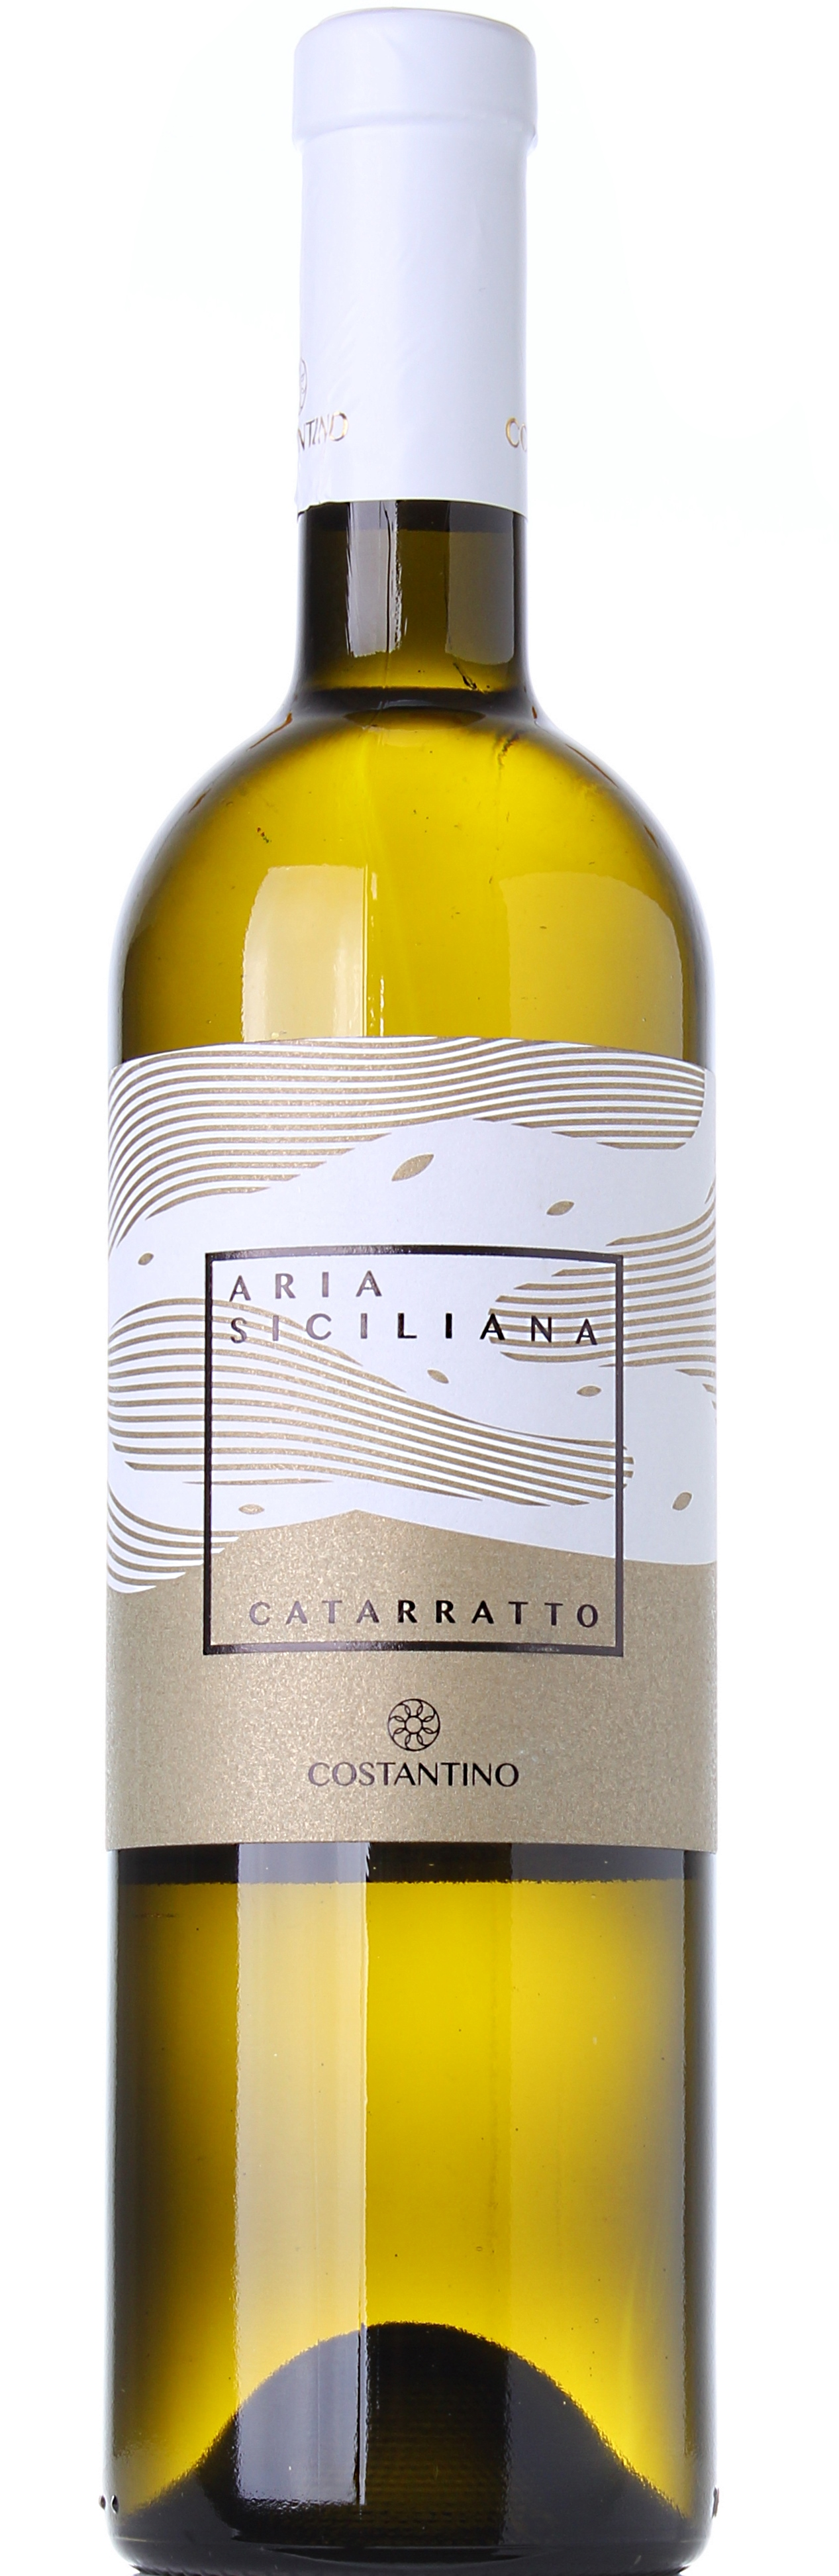 COSTANTINO CATARRATTO ARIA SICILIANA 2015